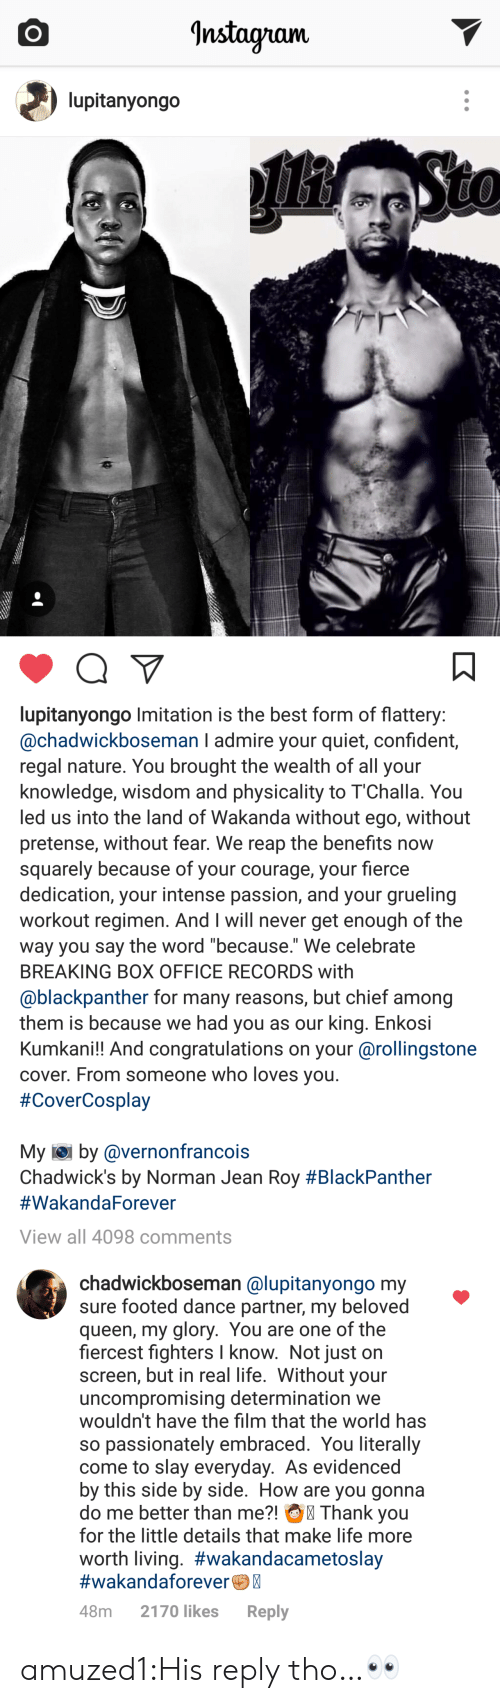 """physicality: Instayram.  lupitanyongo   lupitanyongo Imitation is the best form of flattery  @chadwickboseman I admire your quiet, confident,  regal nature. You brought the wealth of all your  knowledge, wisdom and physicality to 1""""Challa. You  led us into the land of Wakanda without ego, without  pretense, without fear. We reap the benefits now  squarely because of your courage, your fierce  dedication, your intense passion, and your grueling  workout regimen. And I will never get enough of the  way you say the word because. We celebrate  BREAKING BOX OFFICE RECORDS with  @blackpanther for many reasons, but chief among  them is because we had you as our king. Enkosi  Kumkani!! And congratulations on your @rollingstone  cover. From someone who loves you  #CoverCosplay  My iei by @vernonfrancois  Chadwick's by Norman Jean Roy #BlackPanther  #WakandaForever  View all 4098 comments   chadwickboseman @lupitanyongo my  sure footed dance partner, my beloved  queen, my glory. You are one of the  fiercest fighters I know. Not just on  screen, but in real life. Without your  uncompromising determination we  wouldn't have the film that the world has  so passionately embraced. You literally  come to slay everyday. As evidenced  by this side by side. How are you gonna  do me better than me?! Thank you  for the little details that make life more  worth living. #wakandacametoslay  #wakandaforeverC  48m 2170 likes Reply amuzed1:His reply tho…👀"""